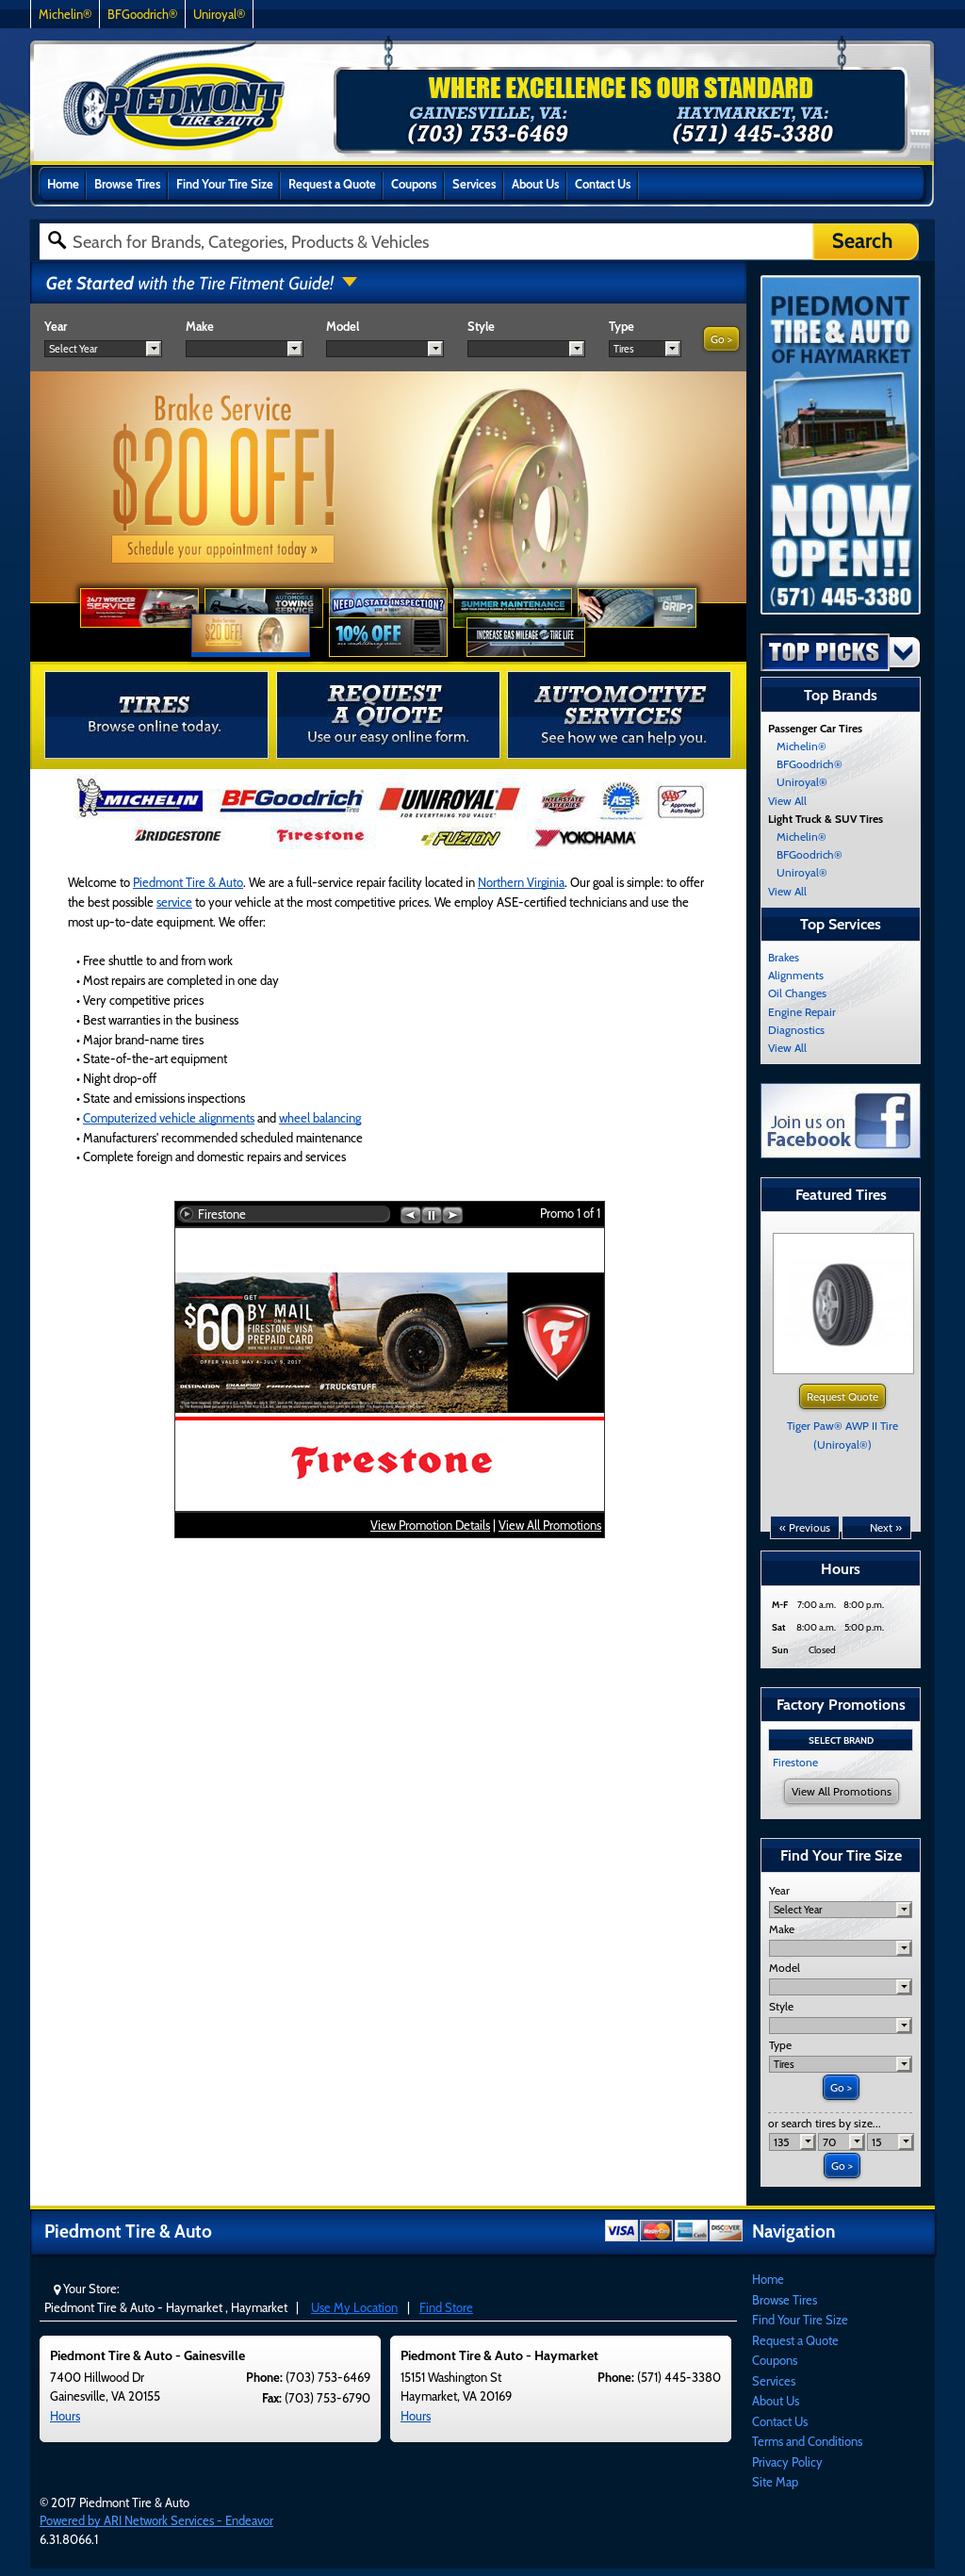 Piedmont Tire And Auto Competitors Revenue And Employees Owler